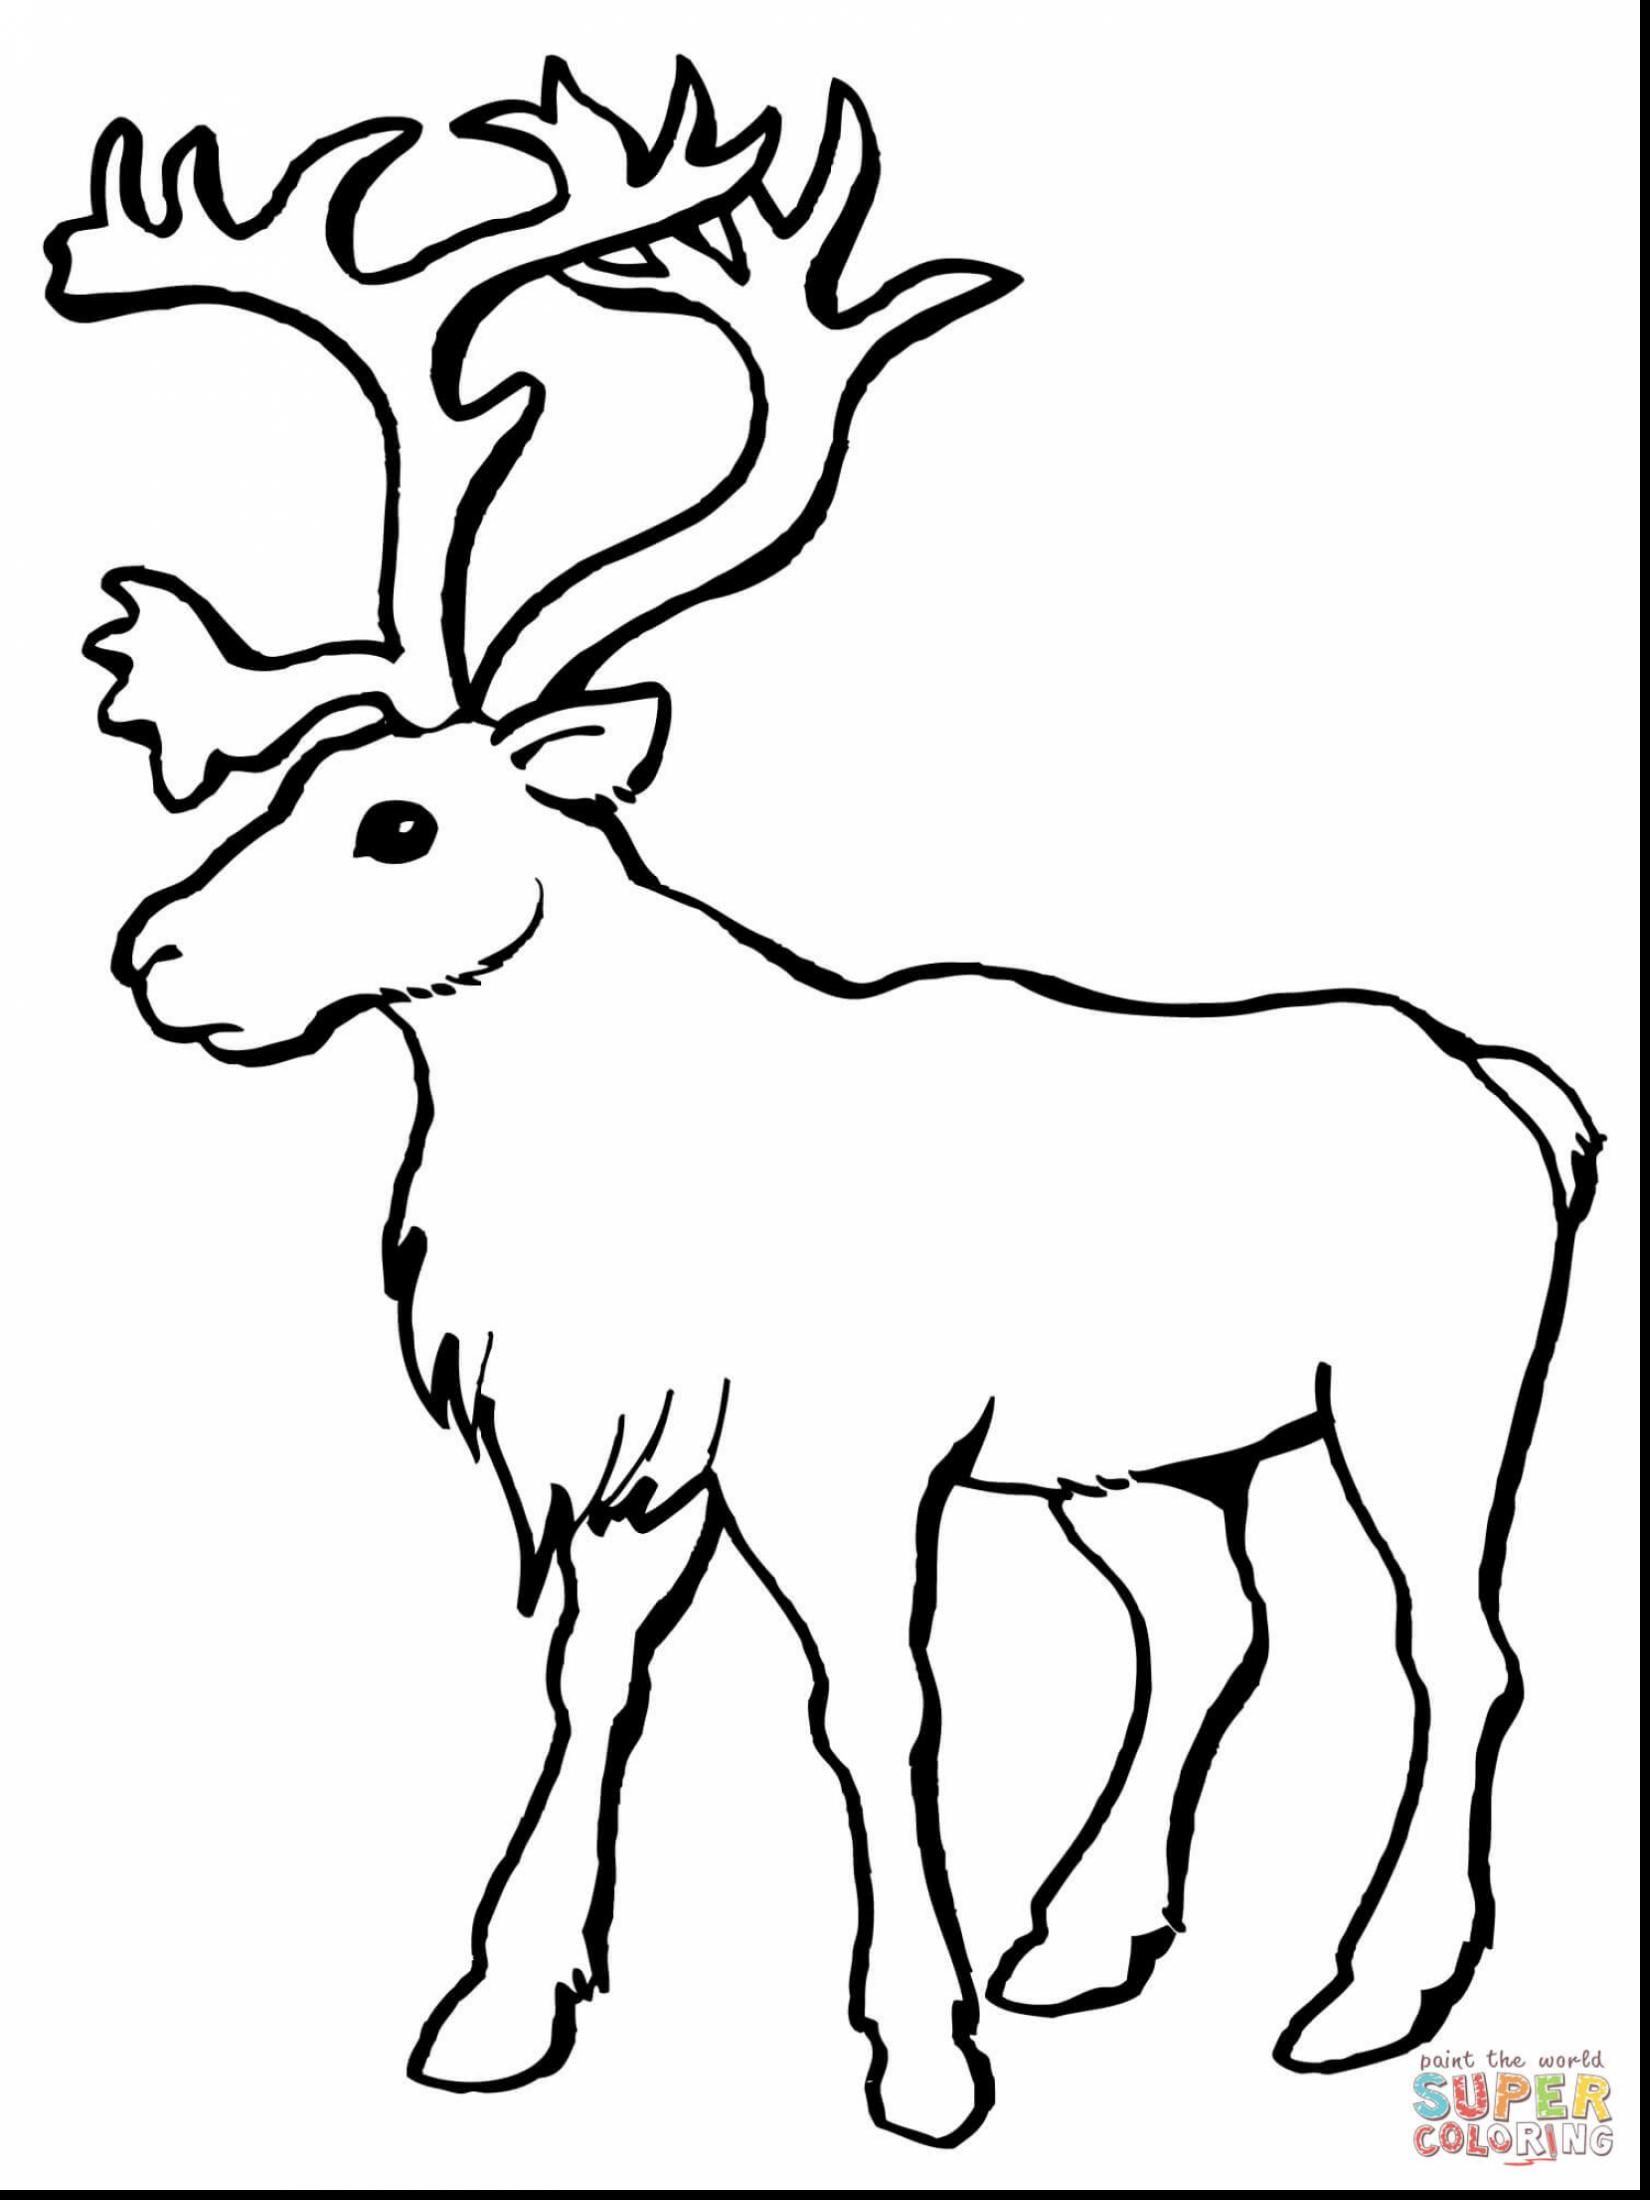 impressive reindeer head santa and sleigh with reindeer coloring page and reindeer face coloring page